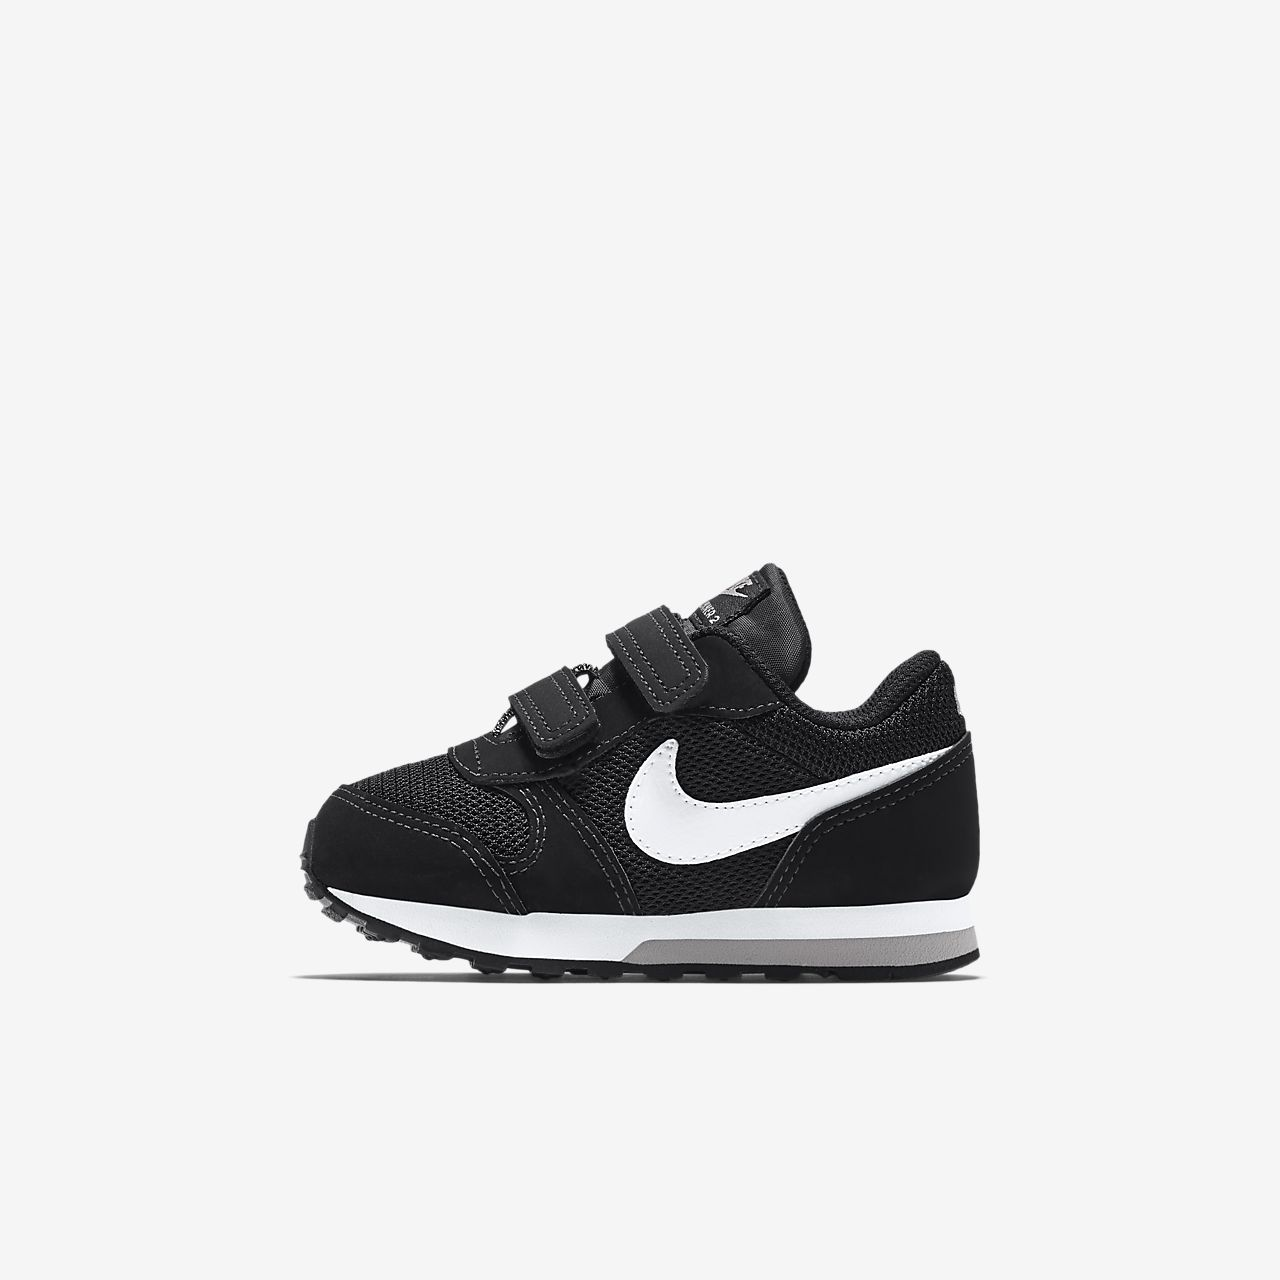 Nike MD Runner 2 Baby and Toddler Shoe